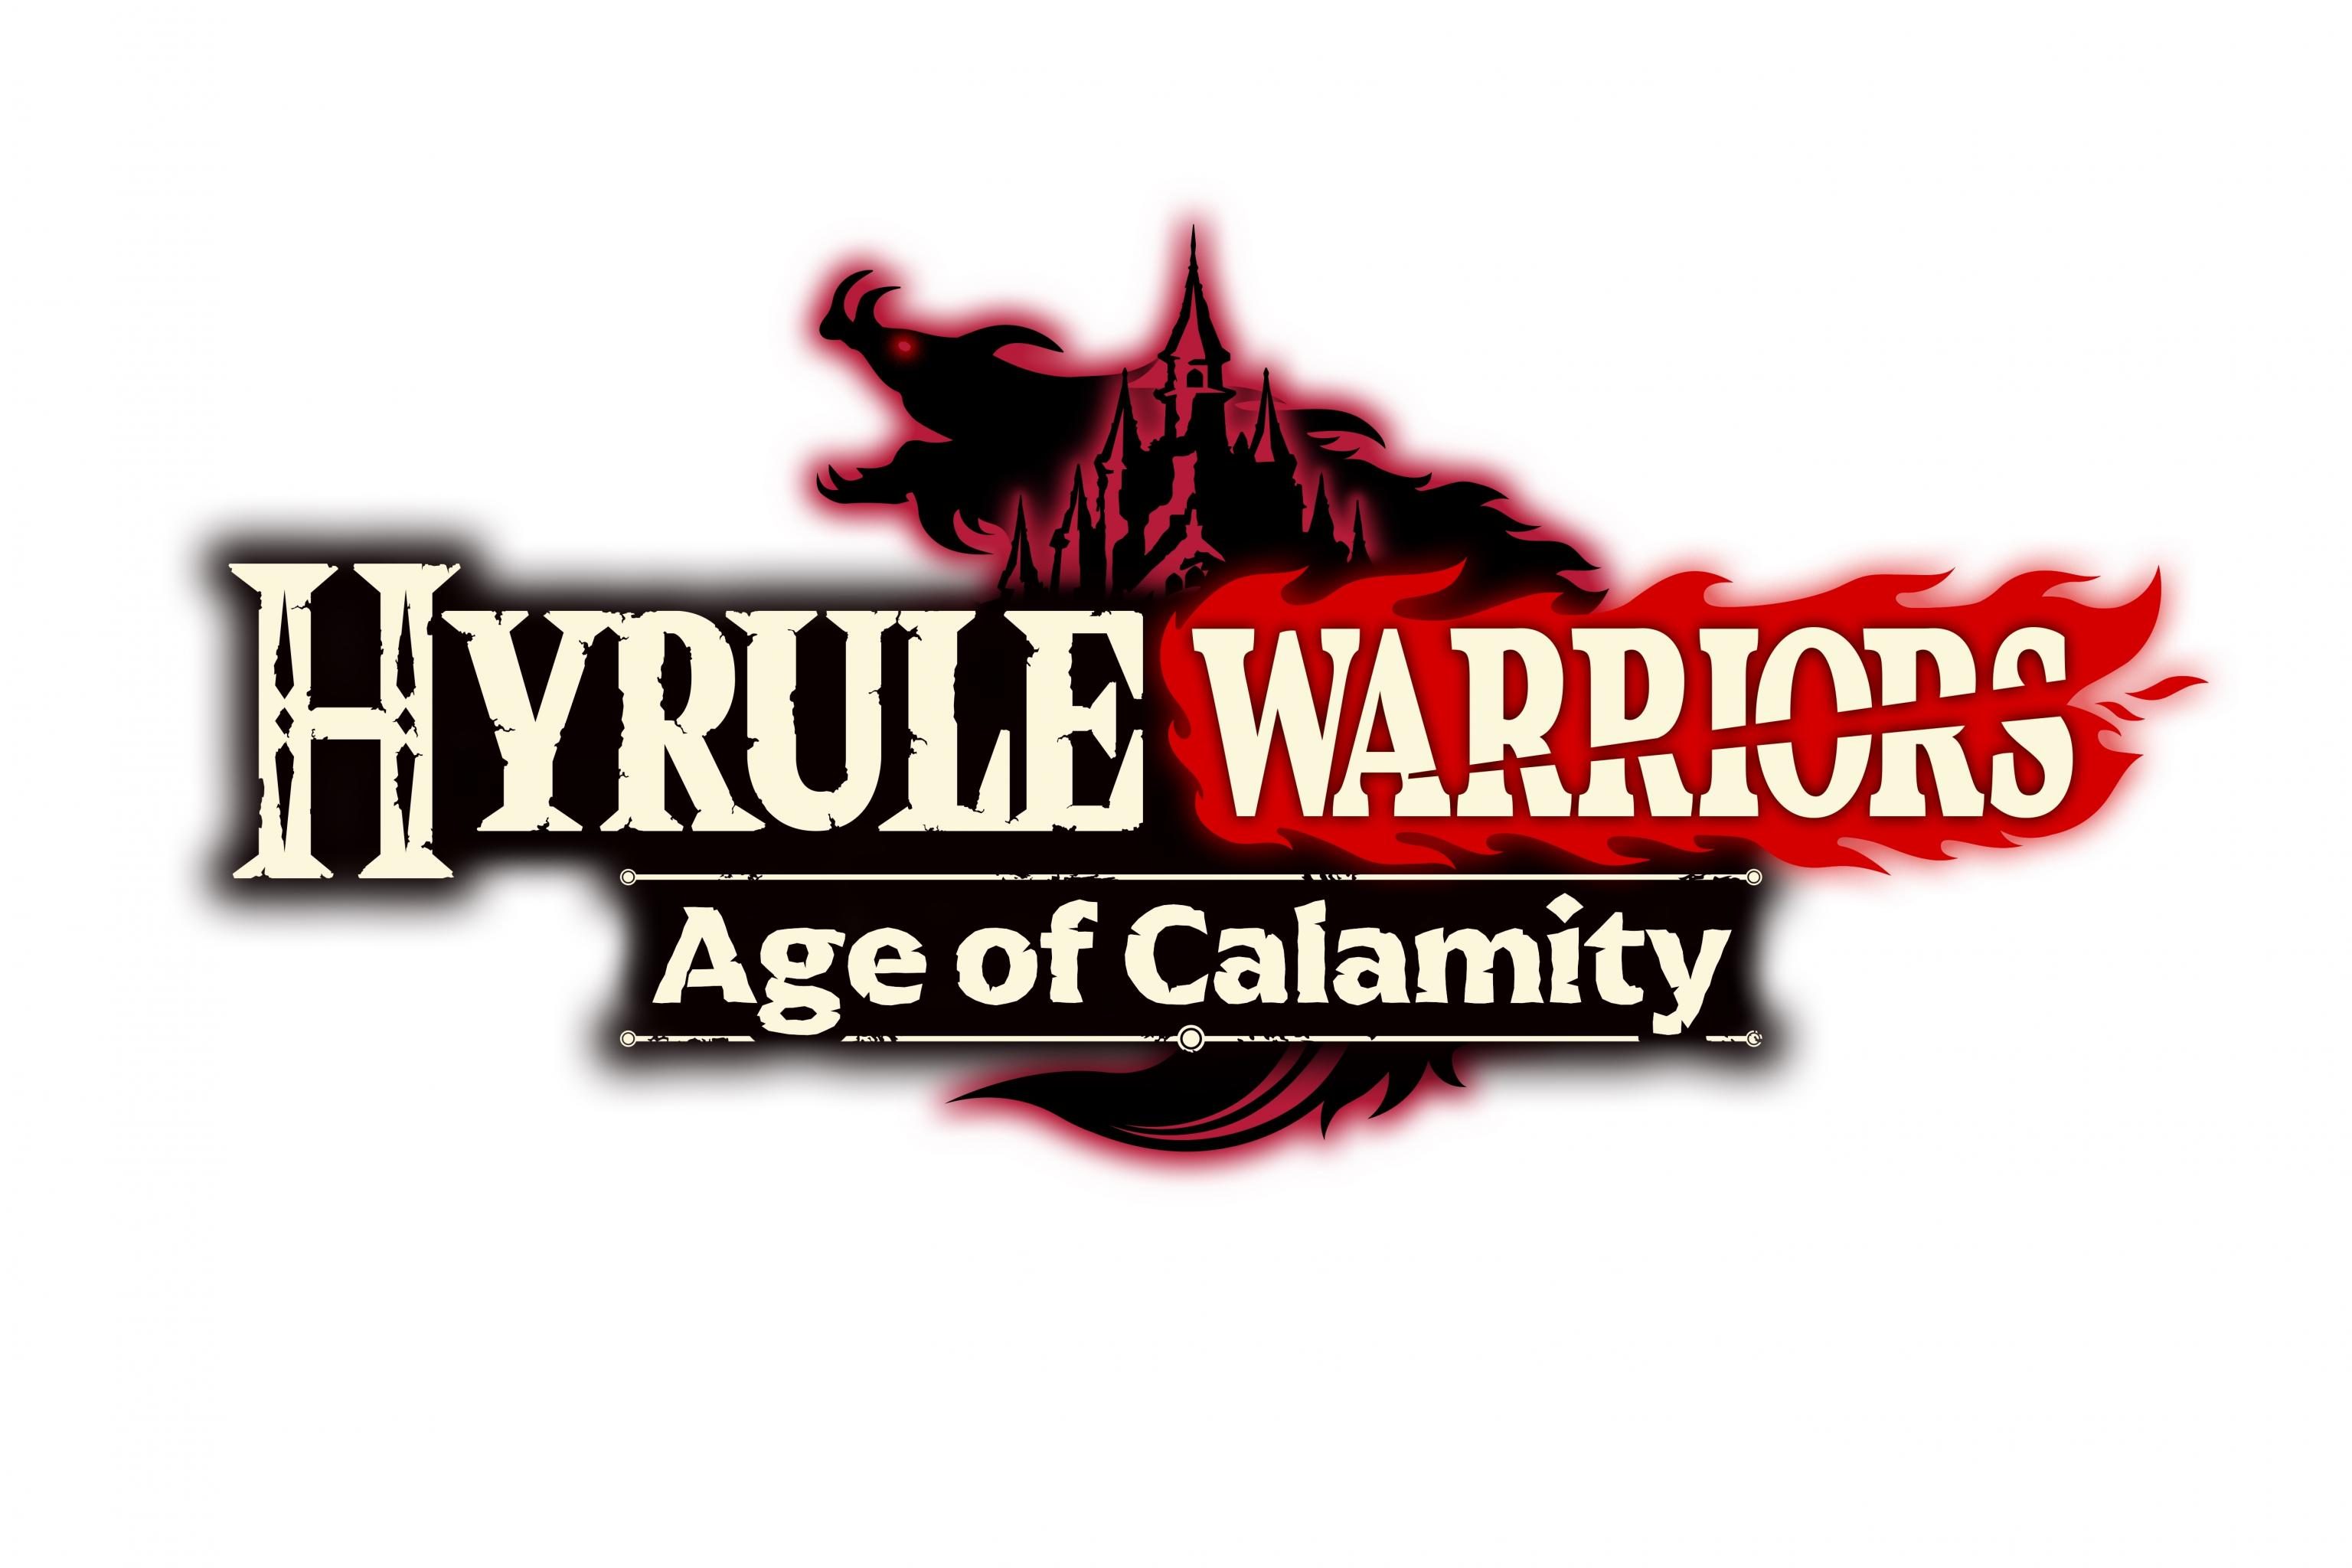 Hyrule Warriors Age Of Calamity Review Gameplay Impressions And Speedrun Tips Bleacher Report Latest News Videos And Highlights